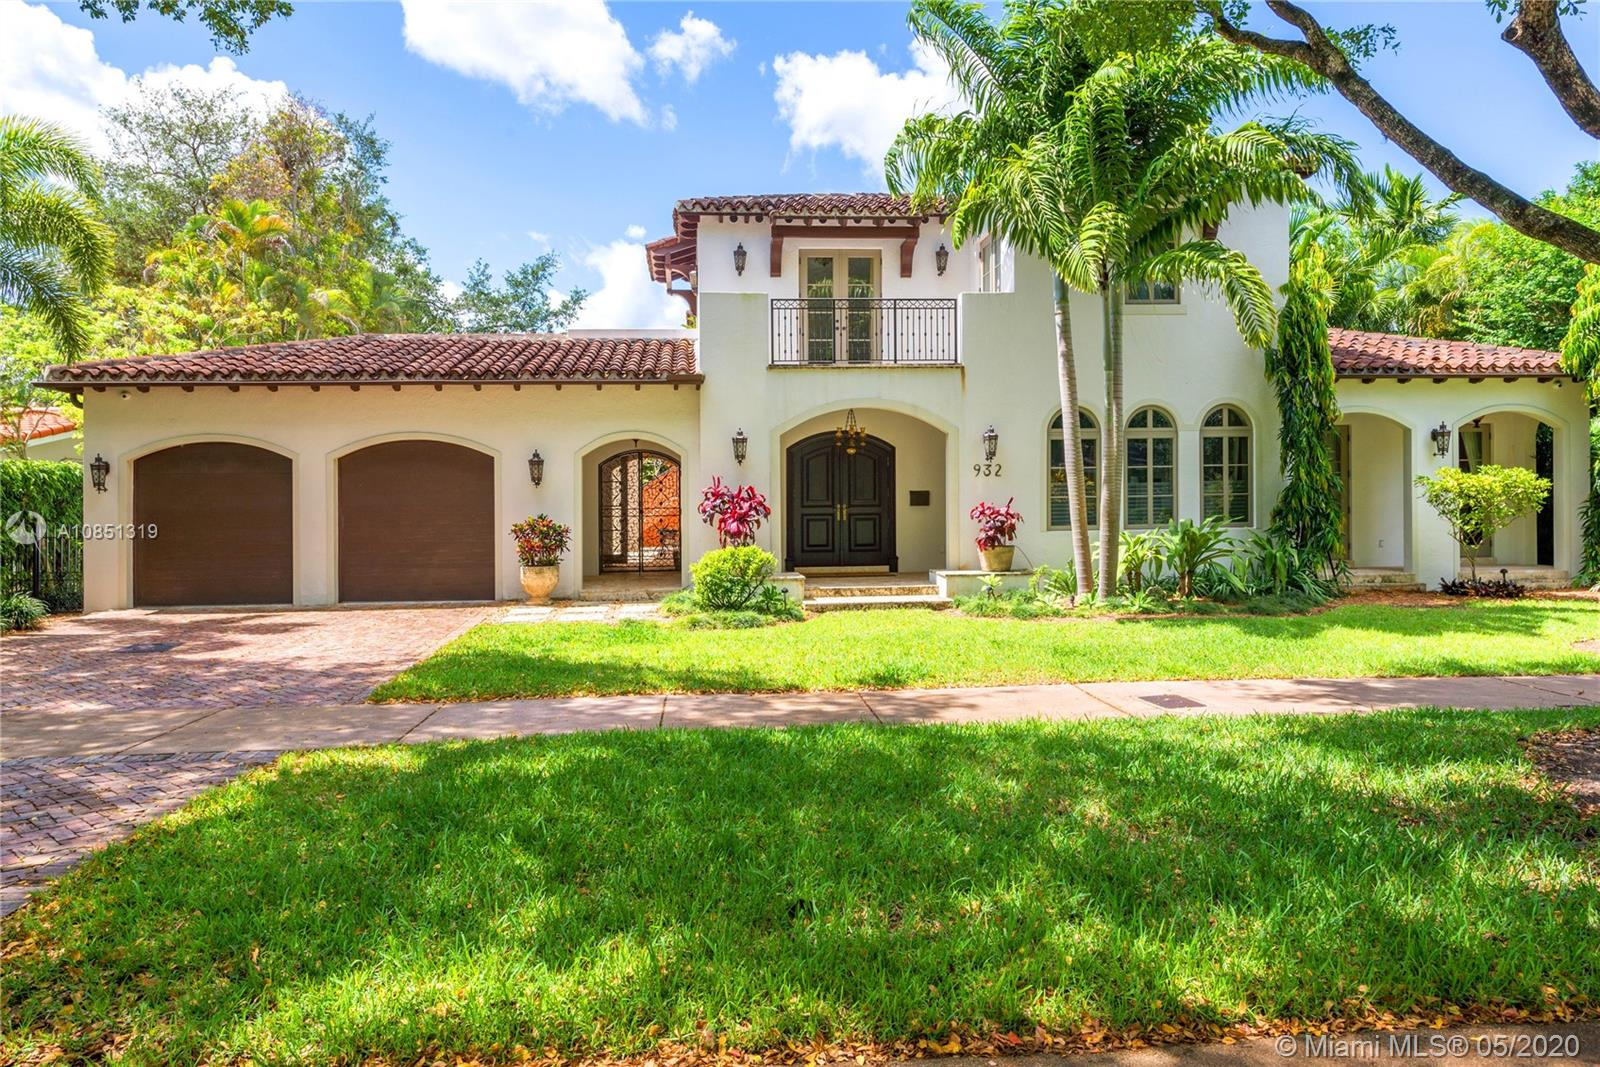 932  Escobar Ave  For Sale A10851319, FL